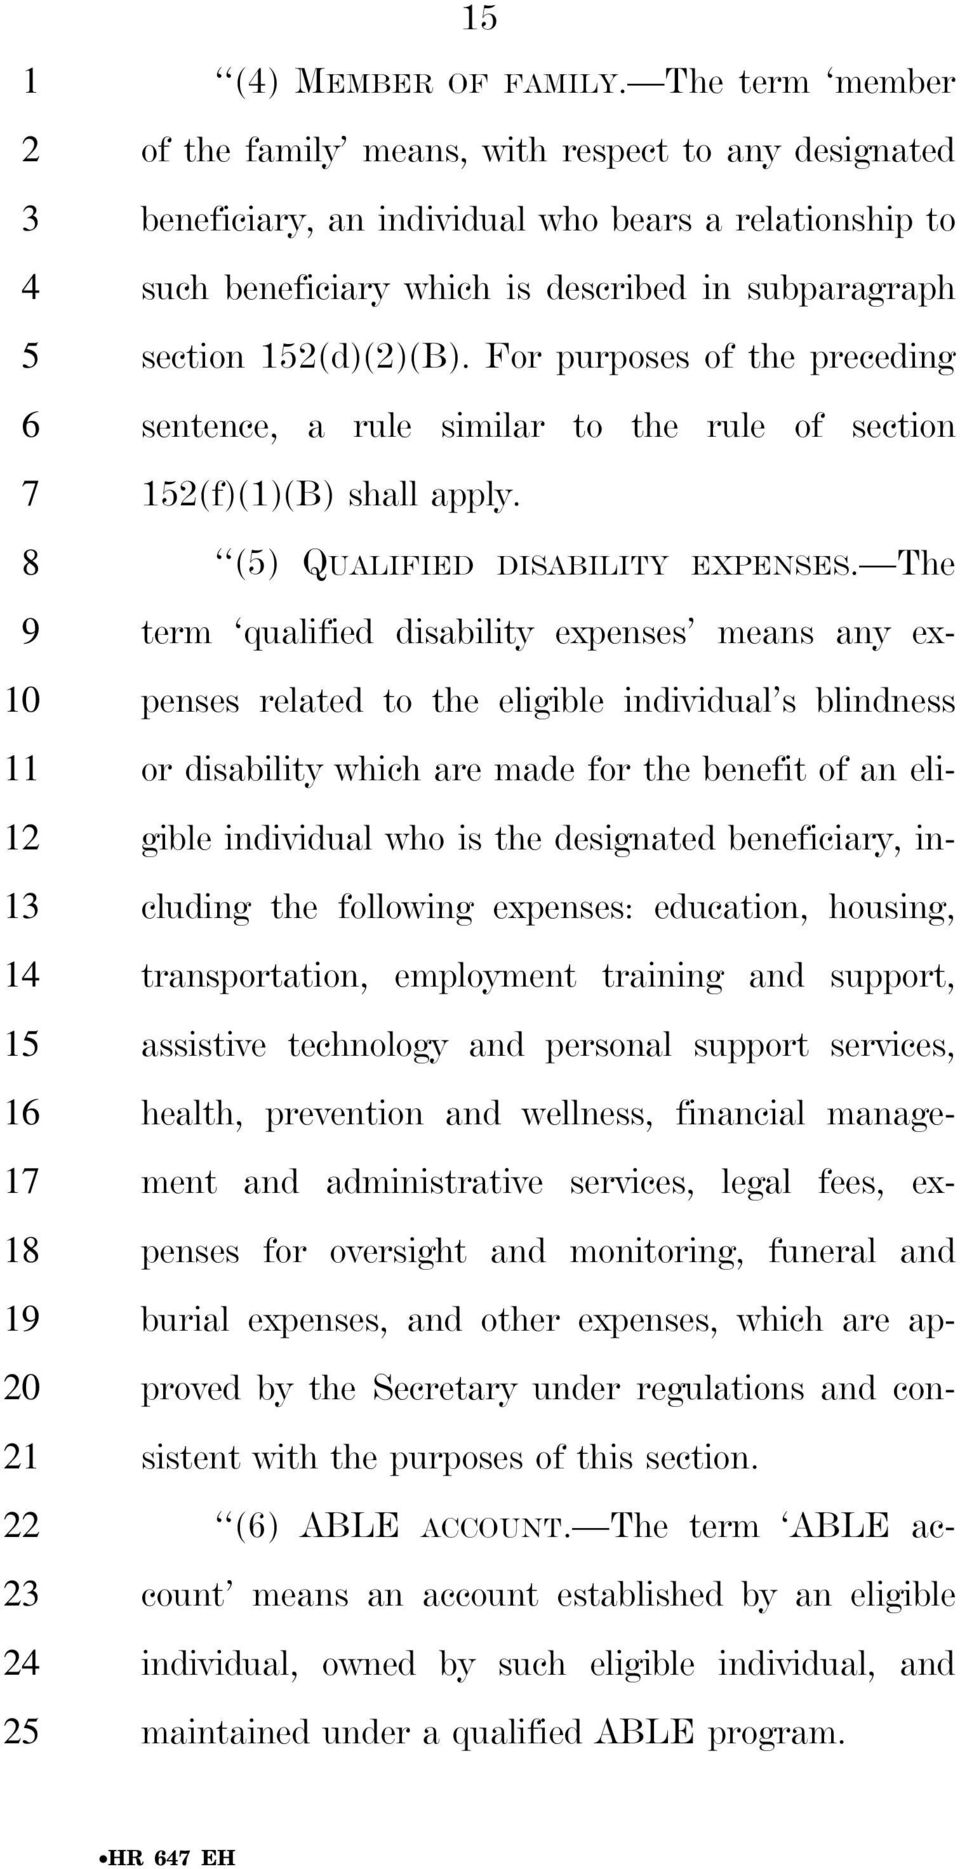 For purposes of the preceding sentence, a rule similar to the rule of section 1(f)(1)(B) shall apply. () QUALIFIED DISABILITY EXPENSES.